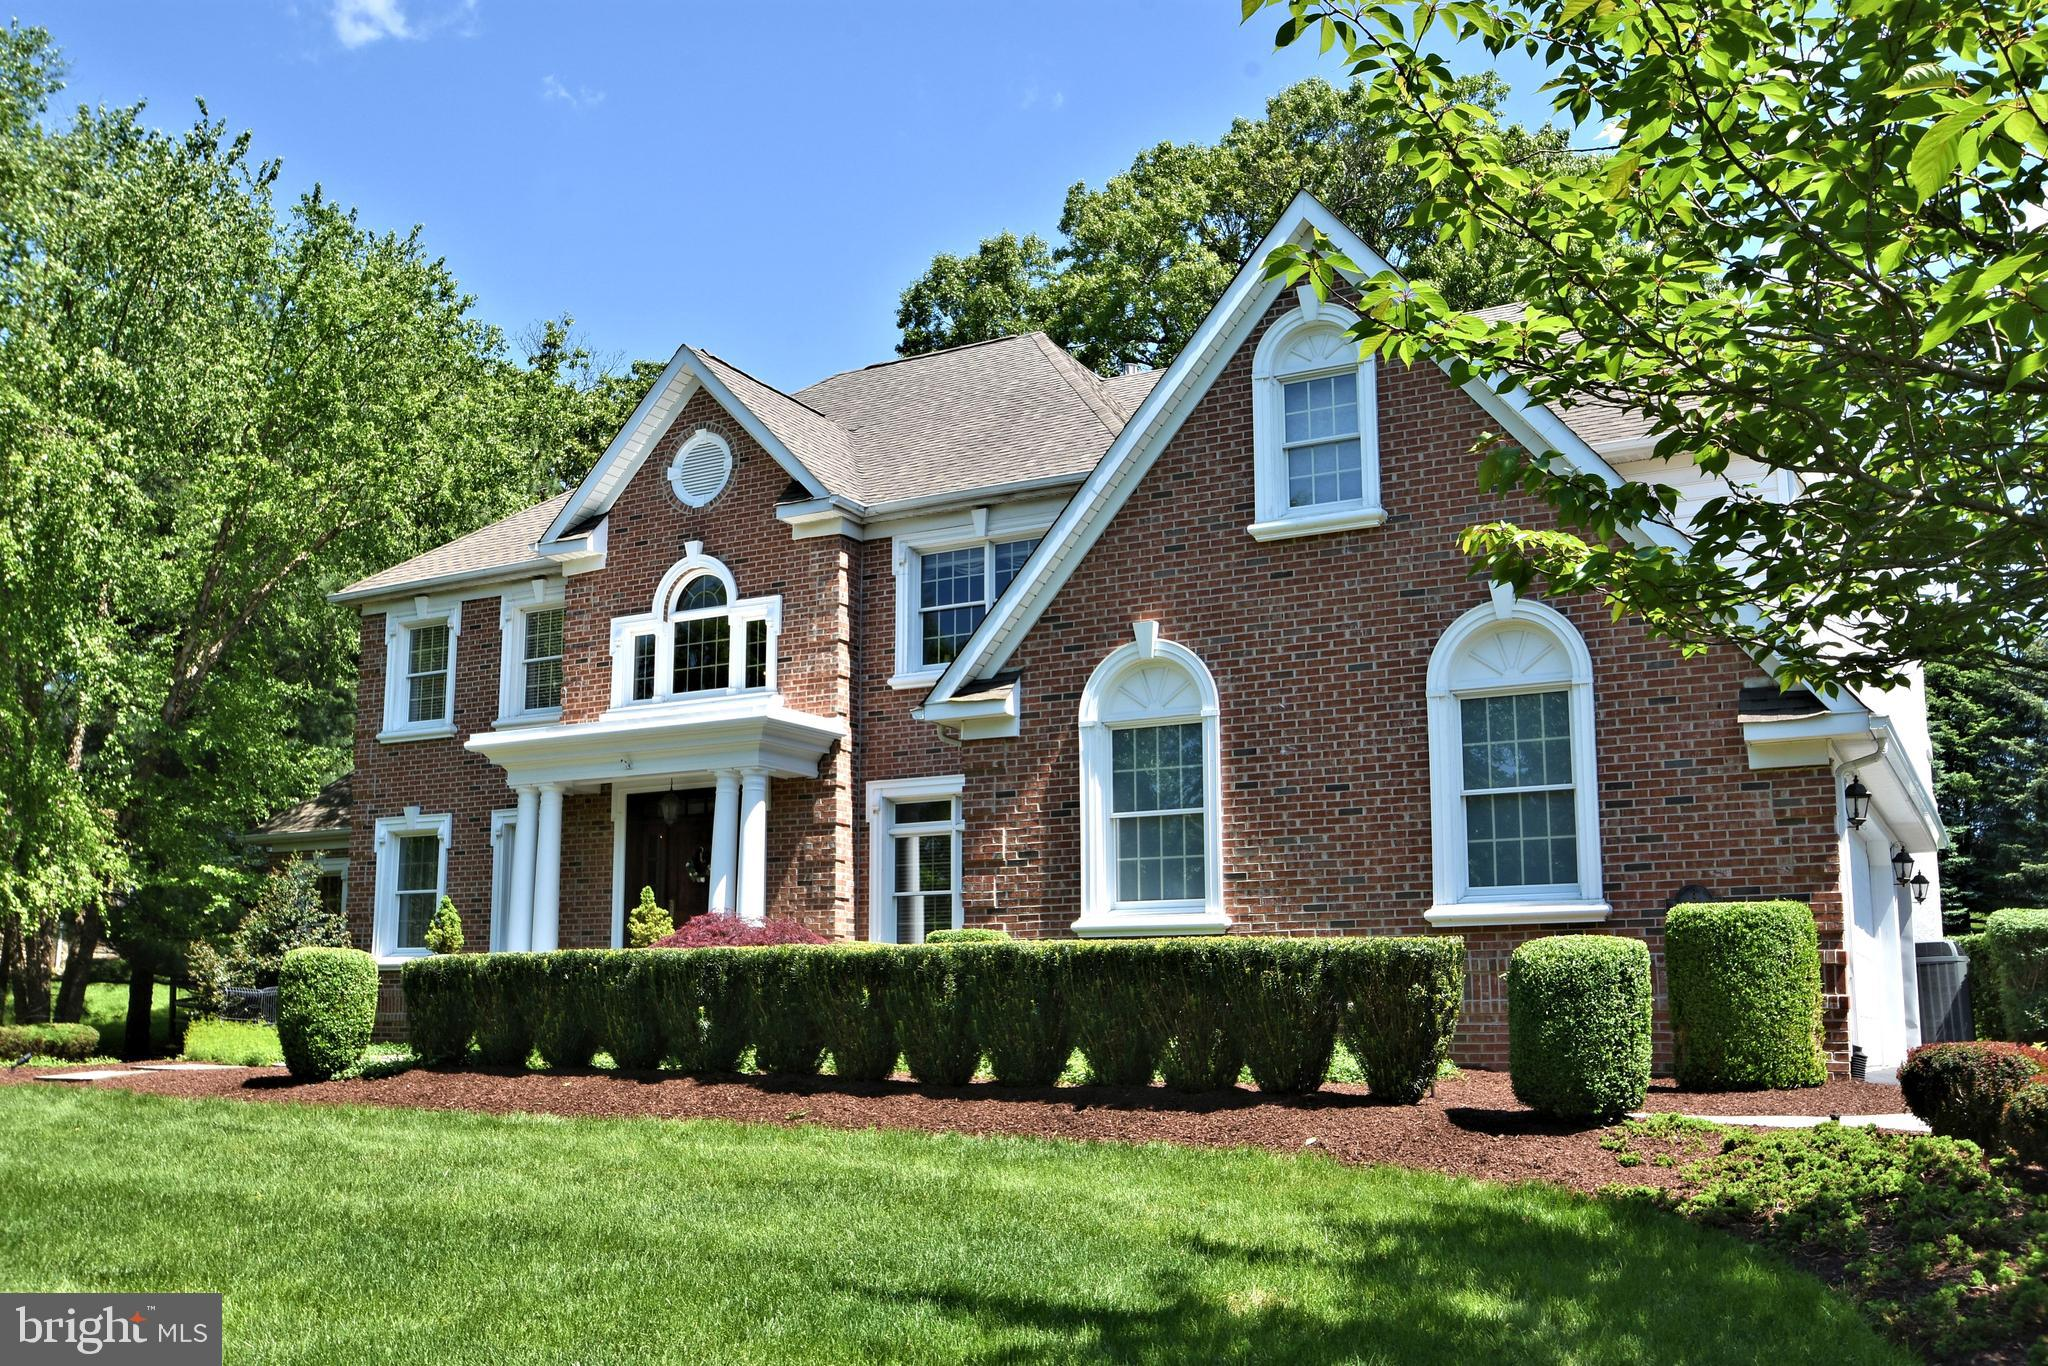 8 TALL OAKS DRIVE, UPPER HOLLAND, PA 19053